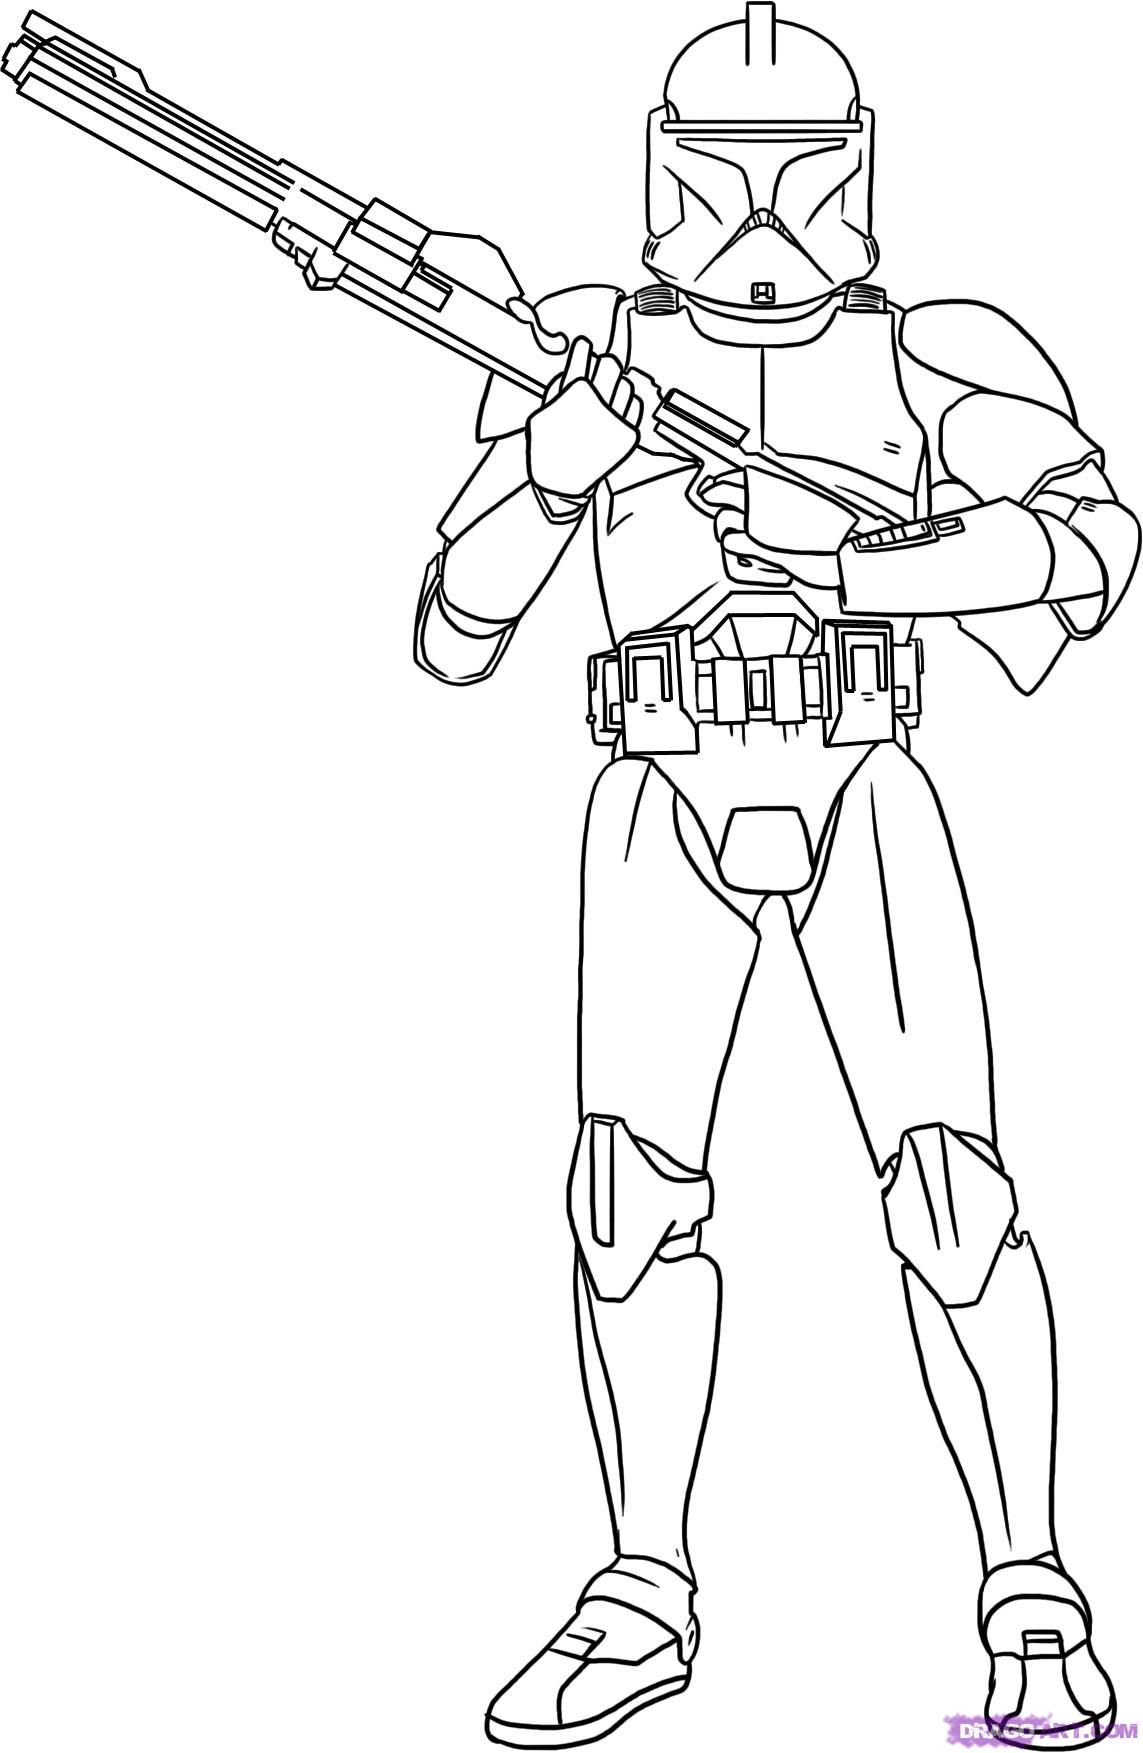 star wars pictures to color star wars the clone wars coloring pages - Star Wars Coloring Books